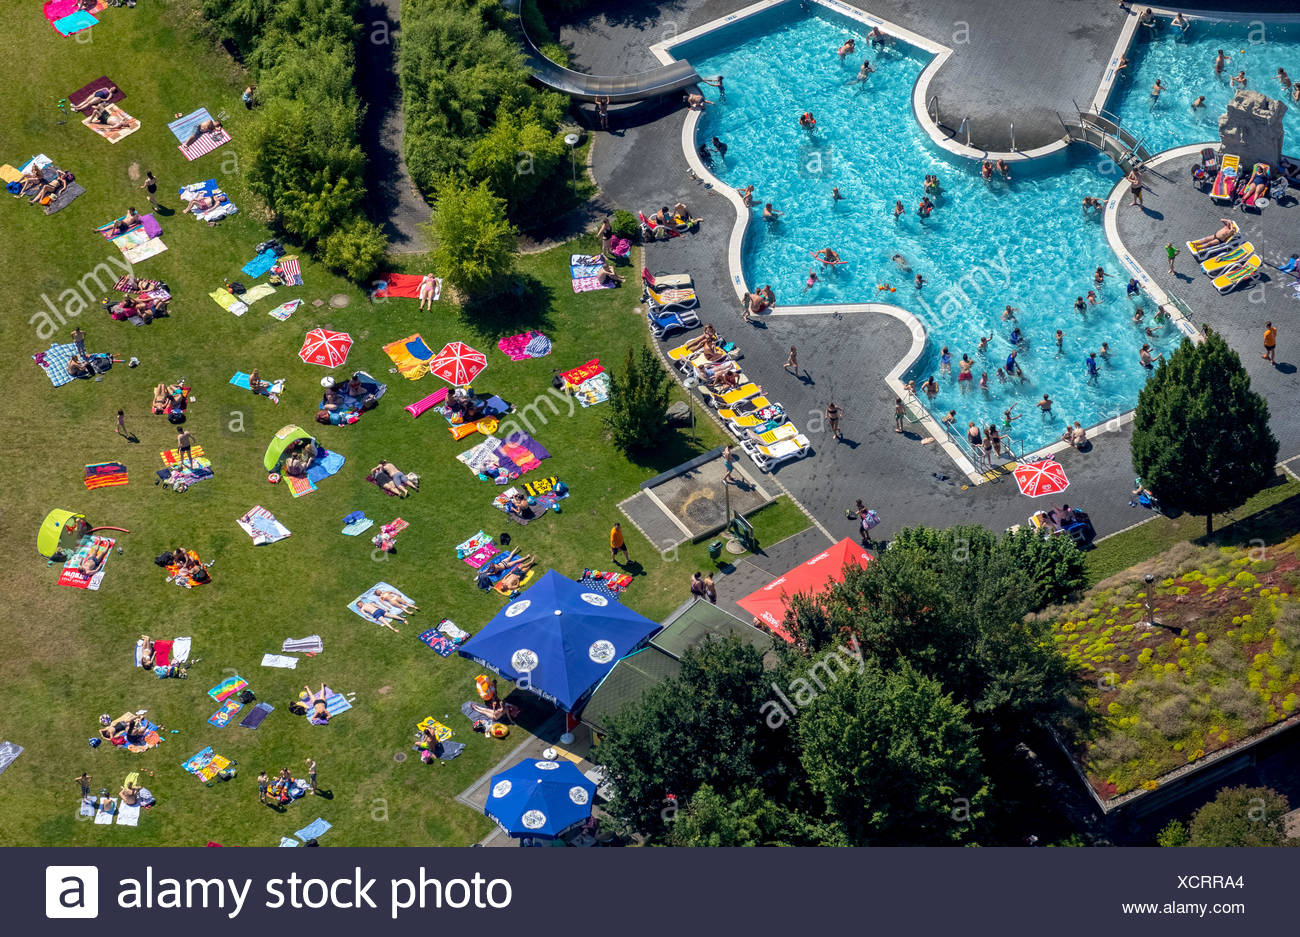 Aerial view, bathers at Atlantis outdoor pool, sunbathing lawn, Dorsten, Ruhr district, North Rhine-Westphalia, Germany - Stock Image